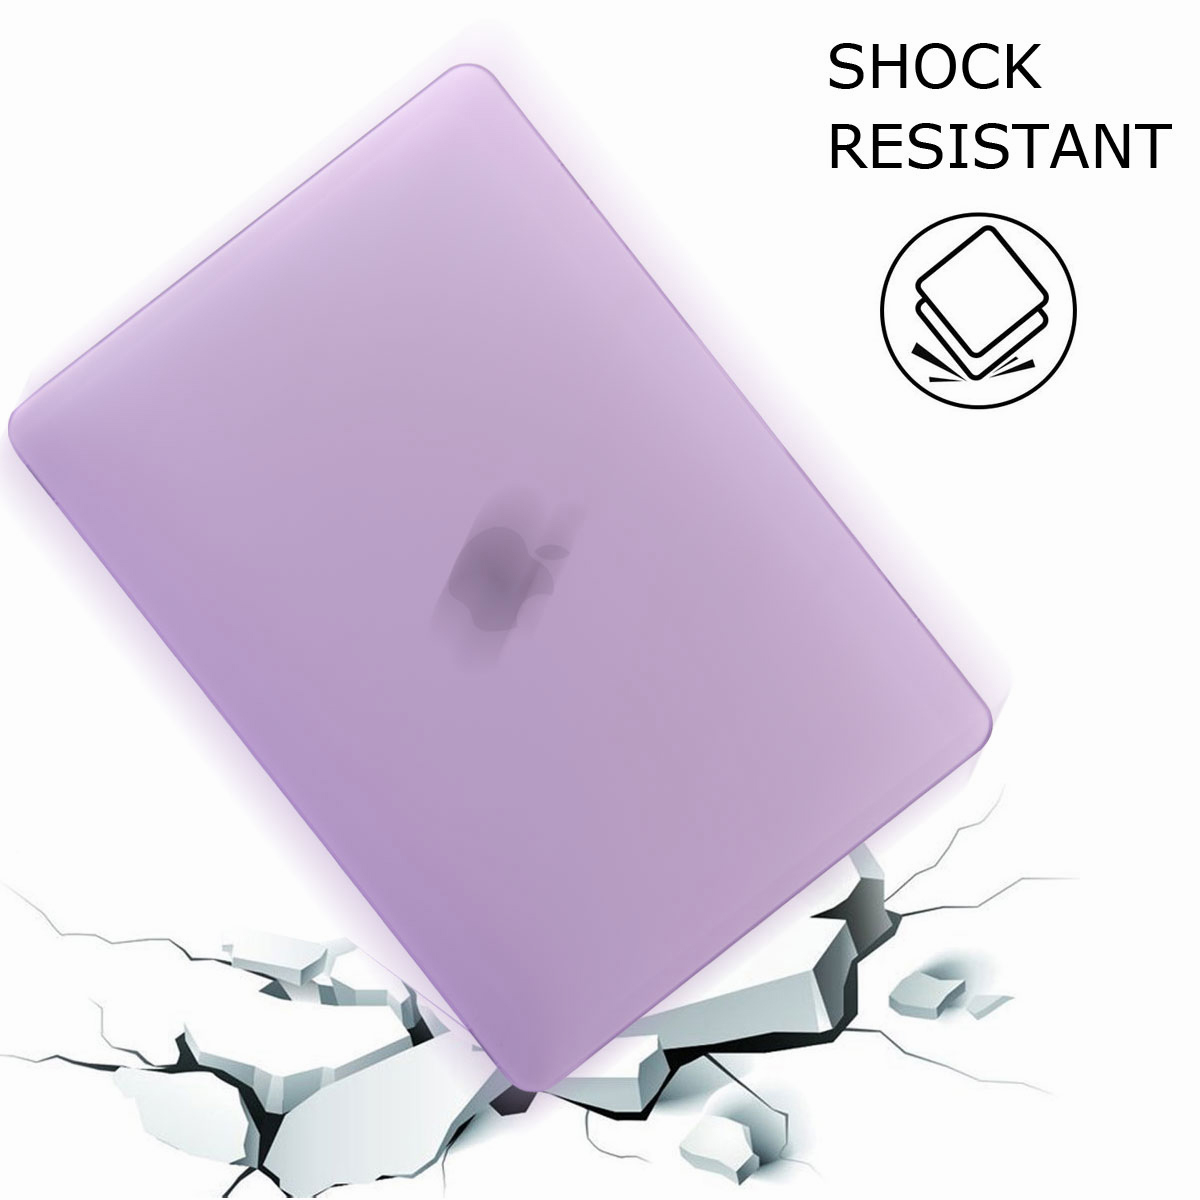 Shockproof-Rubberized-Matte-Hard-Case-Cover-For-Macbook-13-034-15-034-Inch-A1286-A1278 thumbnail 72